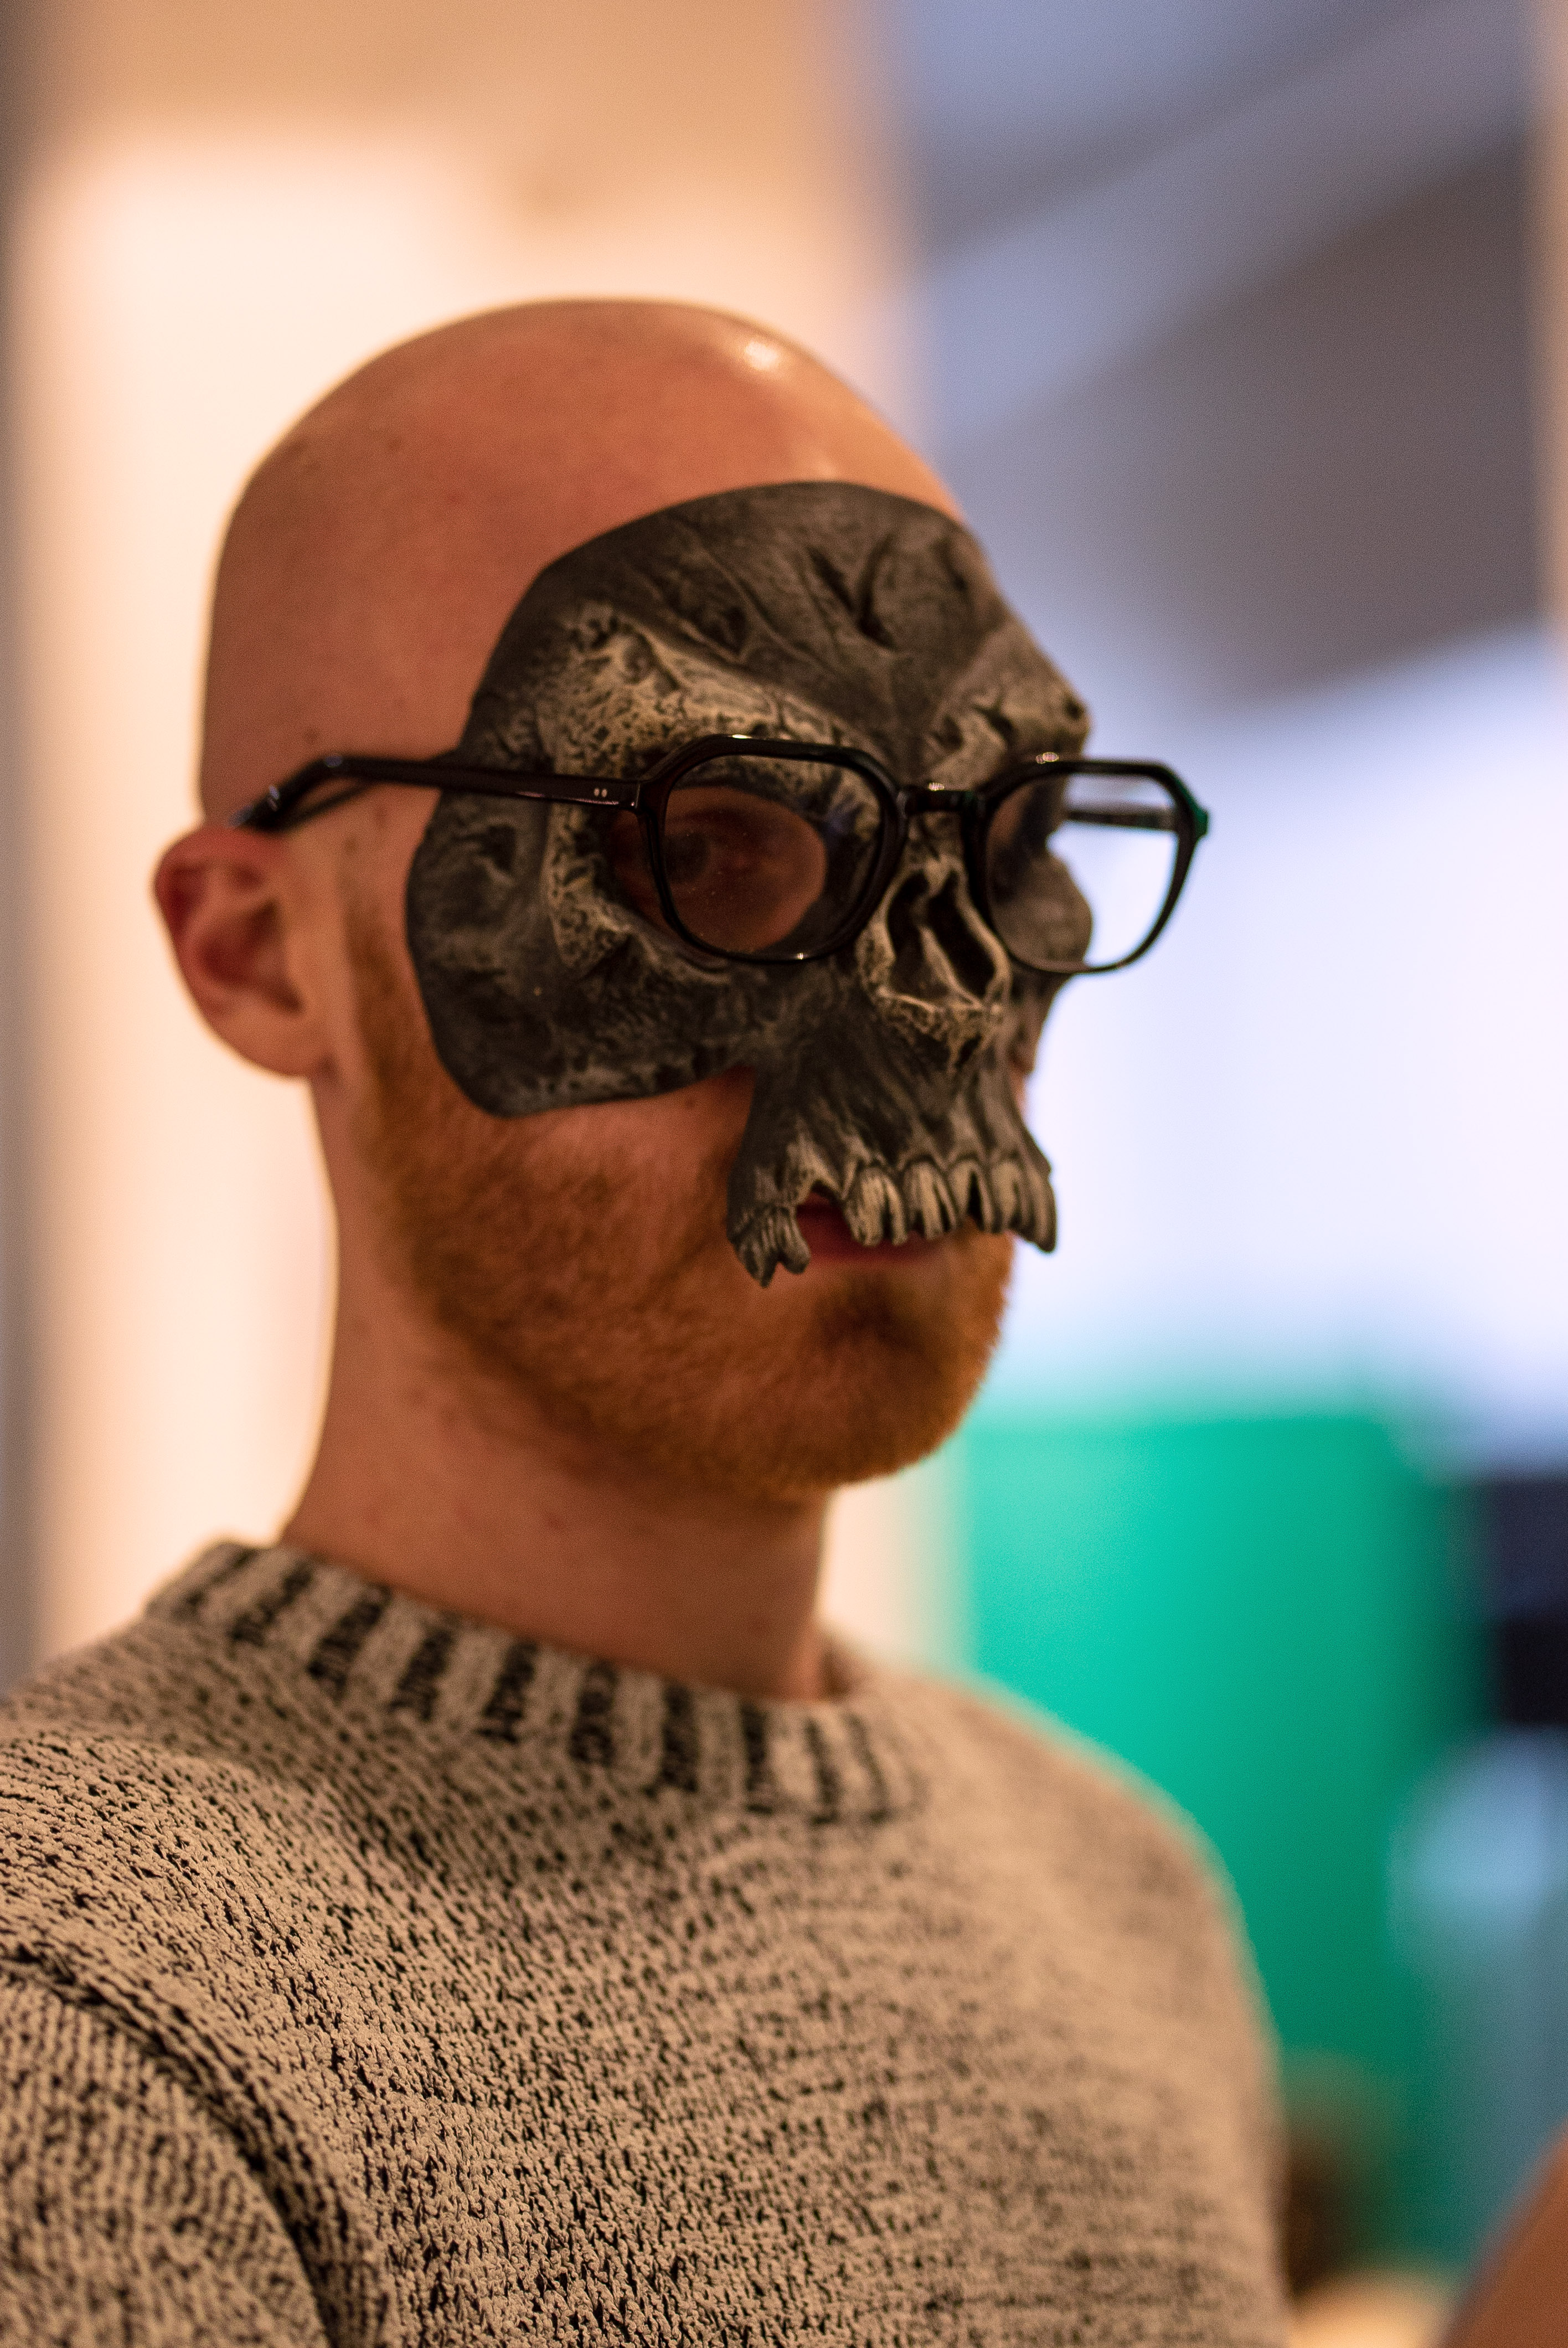 The photo is a close up shot of a person wearing a skull mask. On top of the skull mask they wear their glasses.